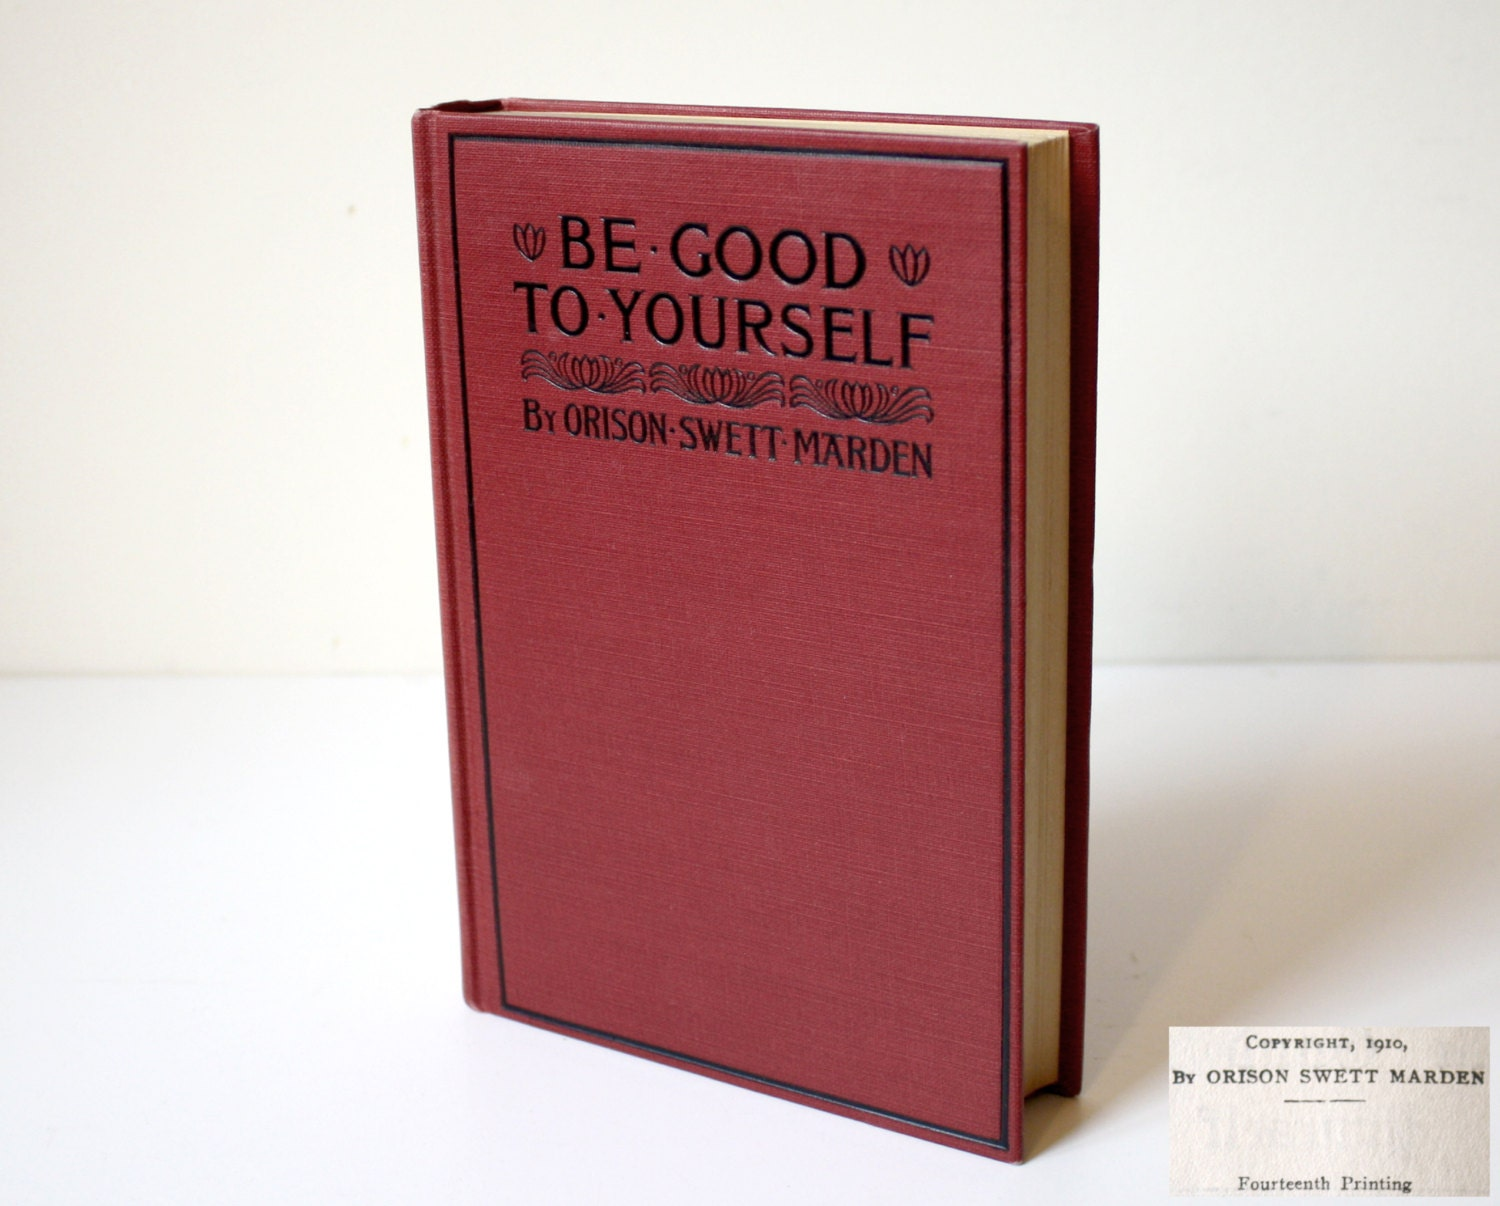 Be good to yourself orison swett marden original hardcover 14th be good to yourself orison swett marden original hardcover 14th printing 1910 thomas y crowell 1910s motivational self help red book solutioingenieria Images